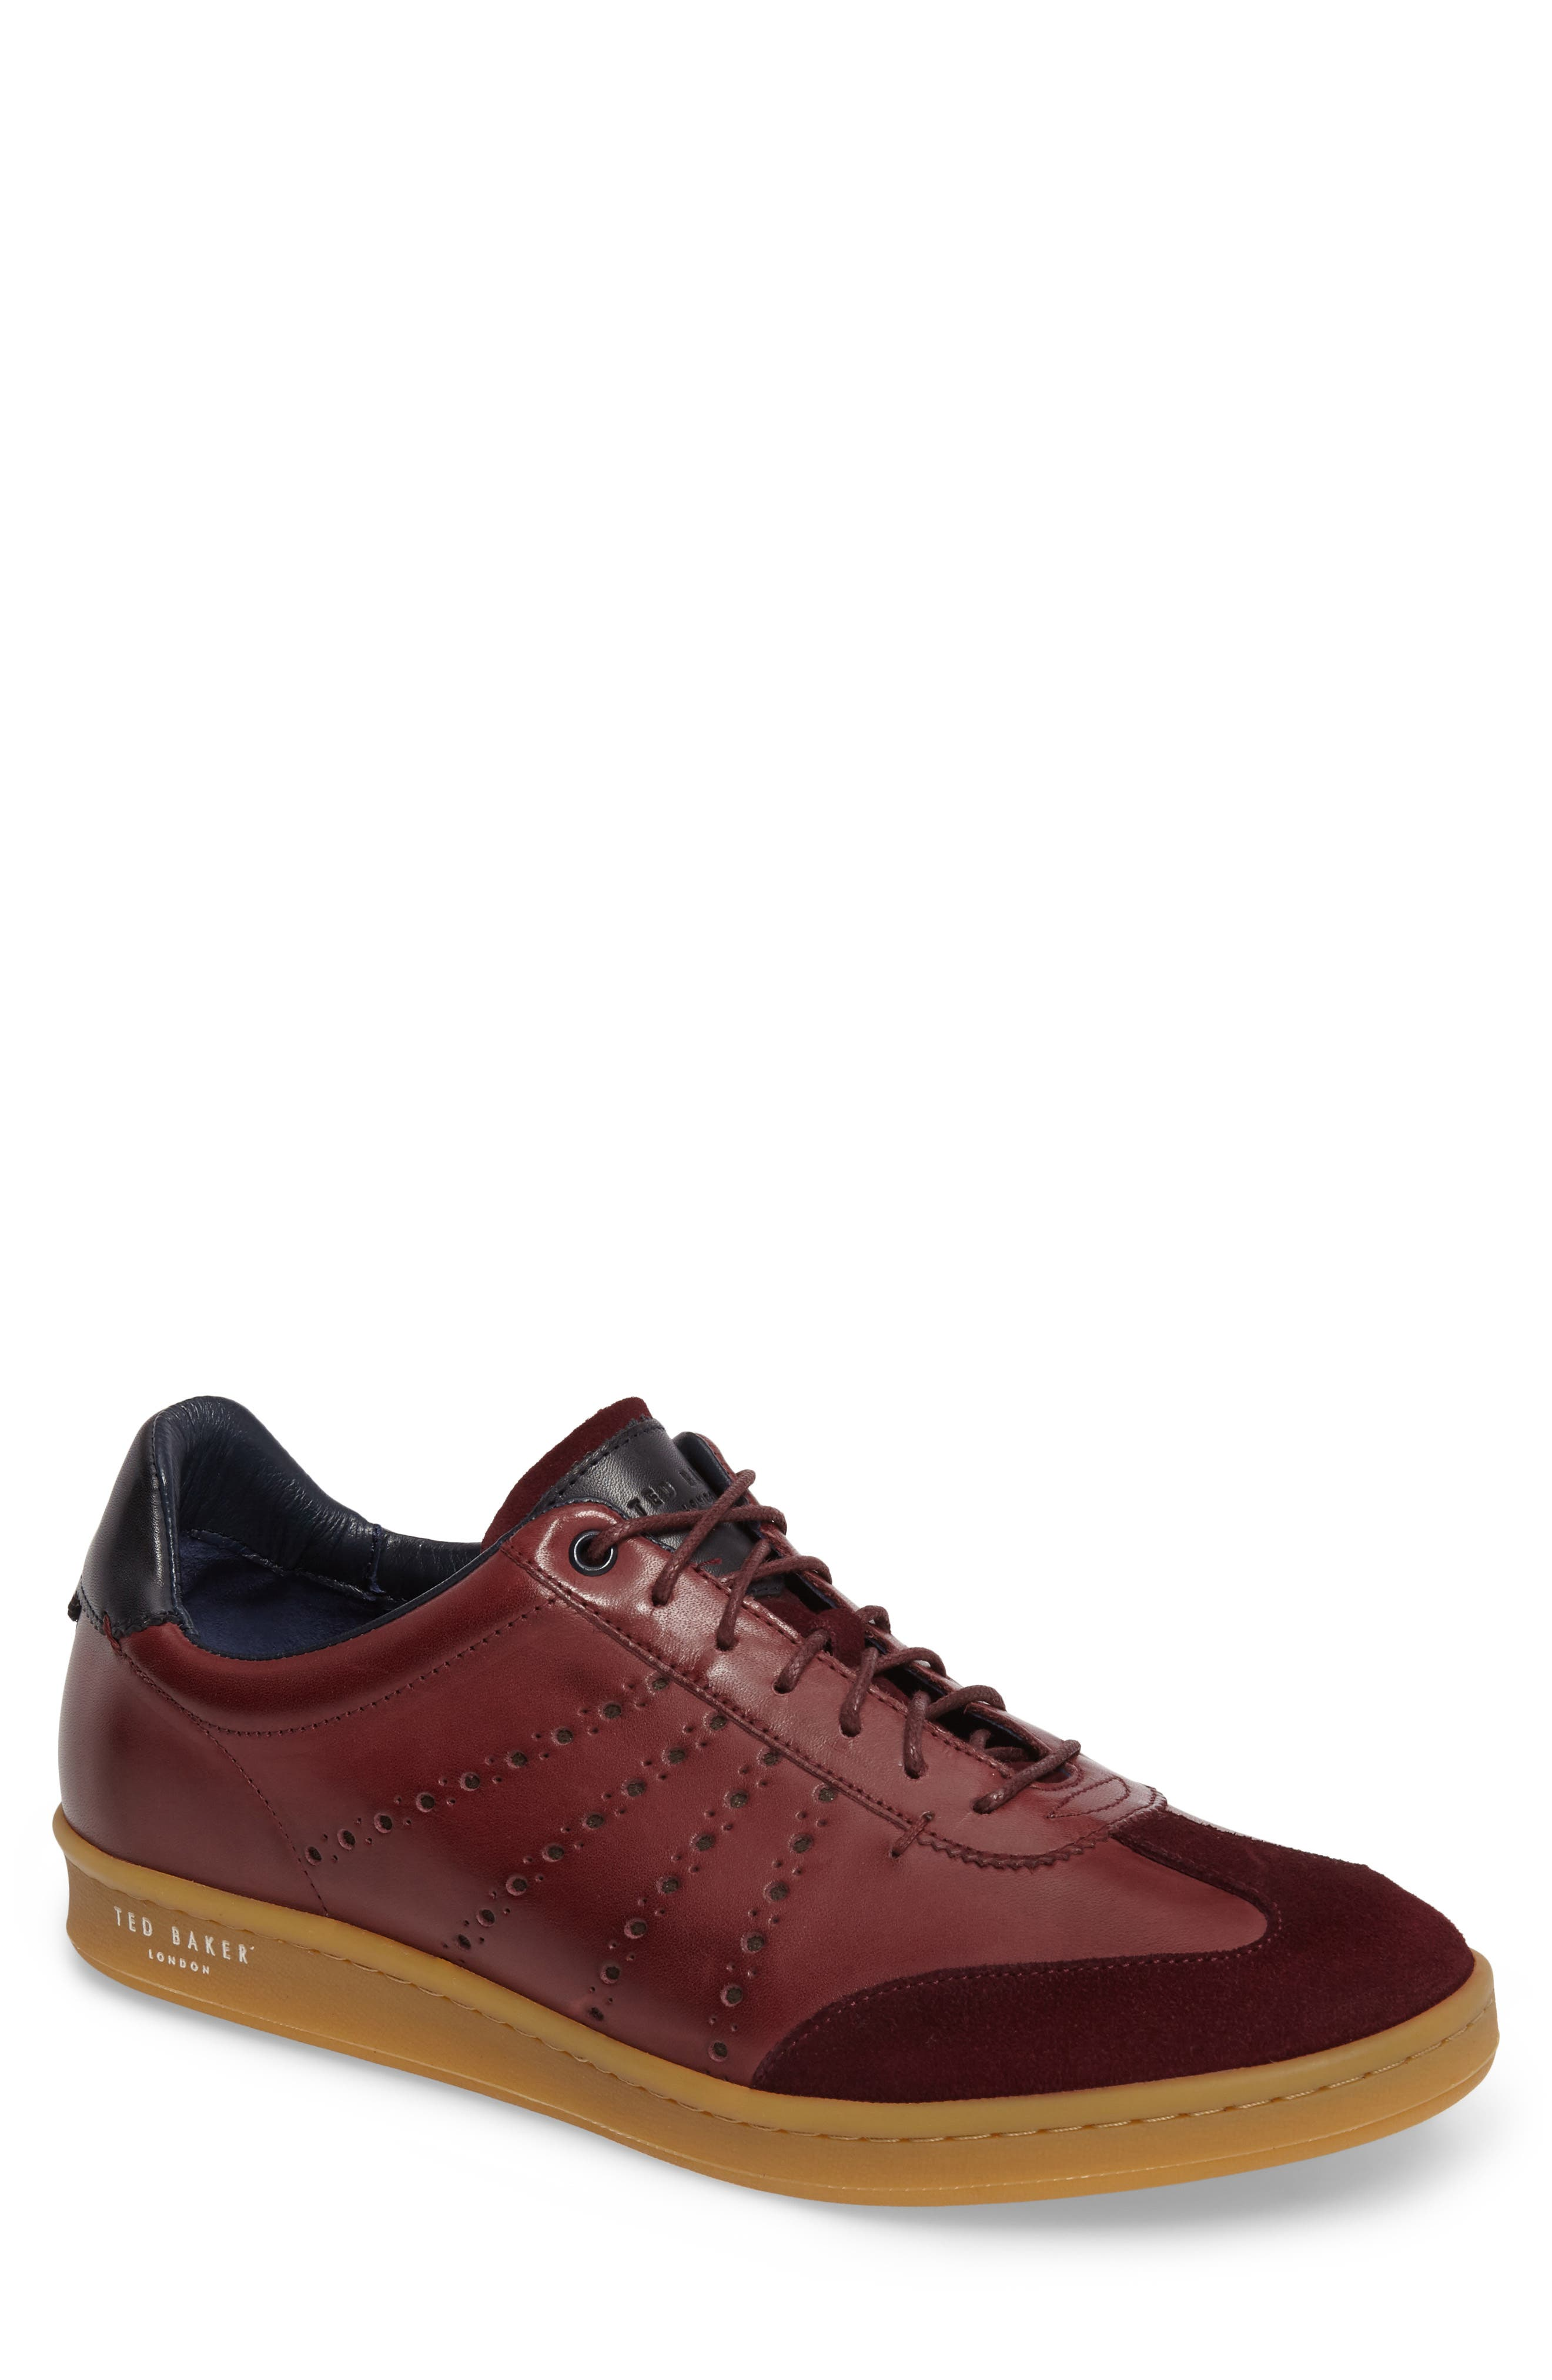 Orlee Sneaker,                         Main,                         color, Dark Red Leather